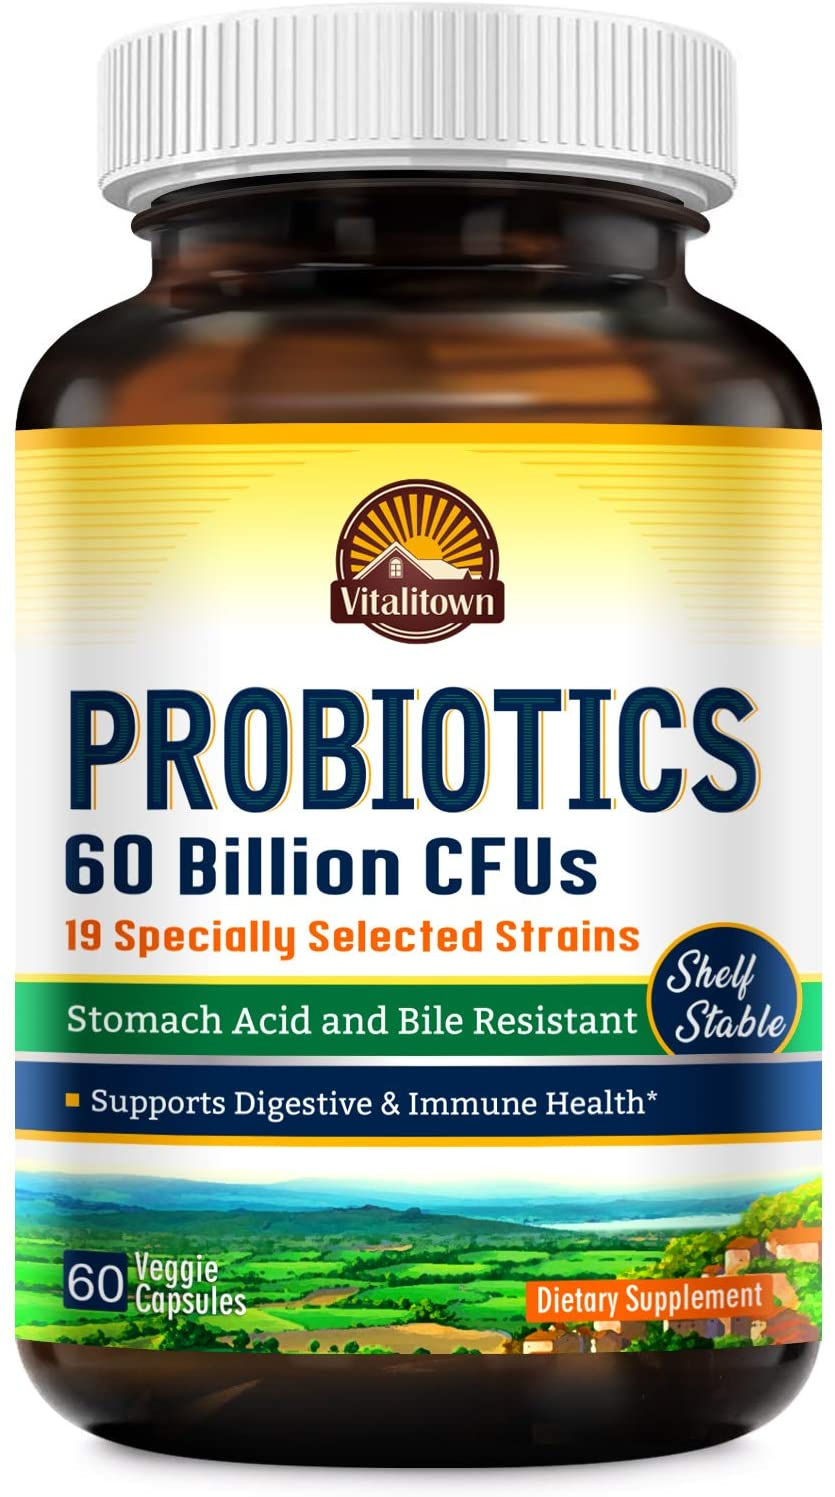 Vitalitown Probiotics + Prebiotics | 60 Billion CFUs 19 Strains | 60 Delayed Release Veg Caps | Shelf Stable, Stomach Acid & Bile Resistant | Digestive & Immune Support | Vegan, Non-GMO, Dairy Free